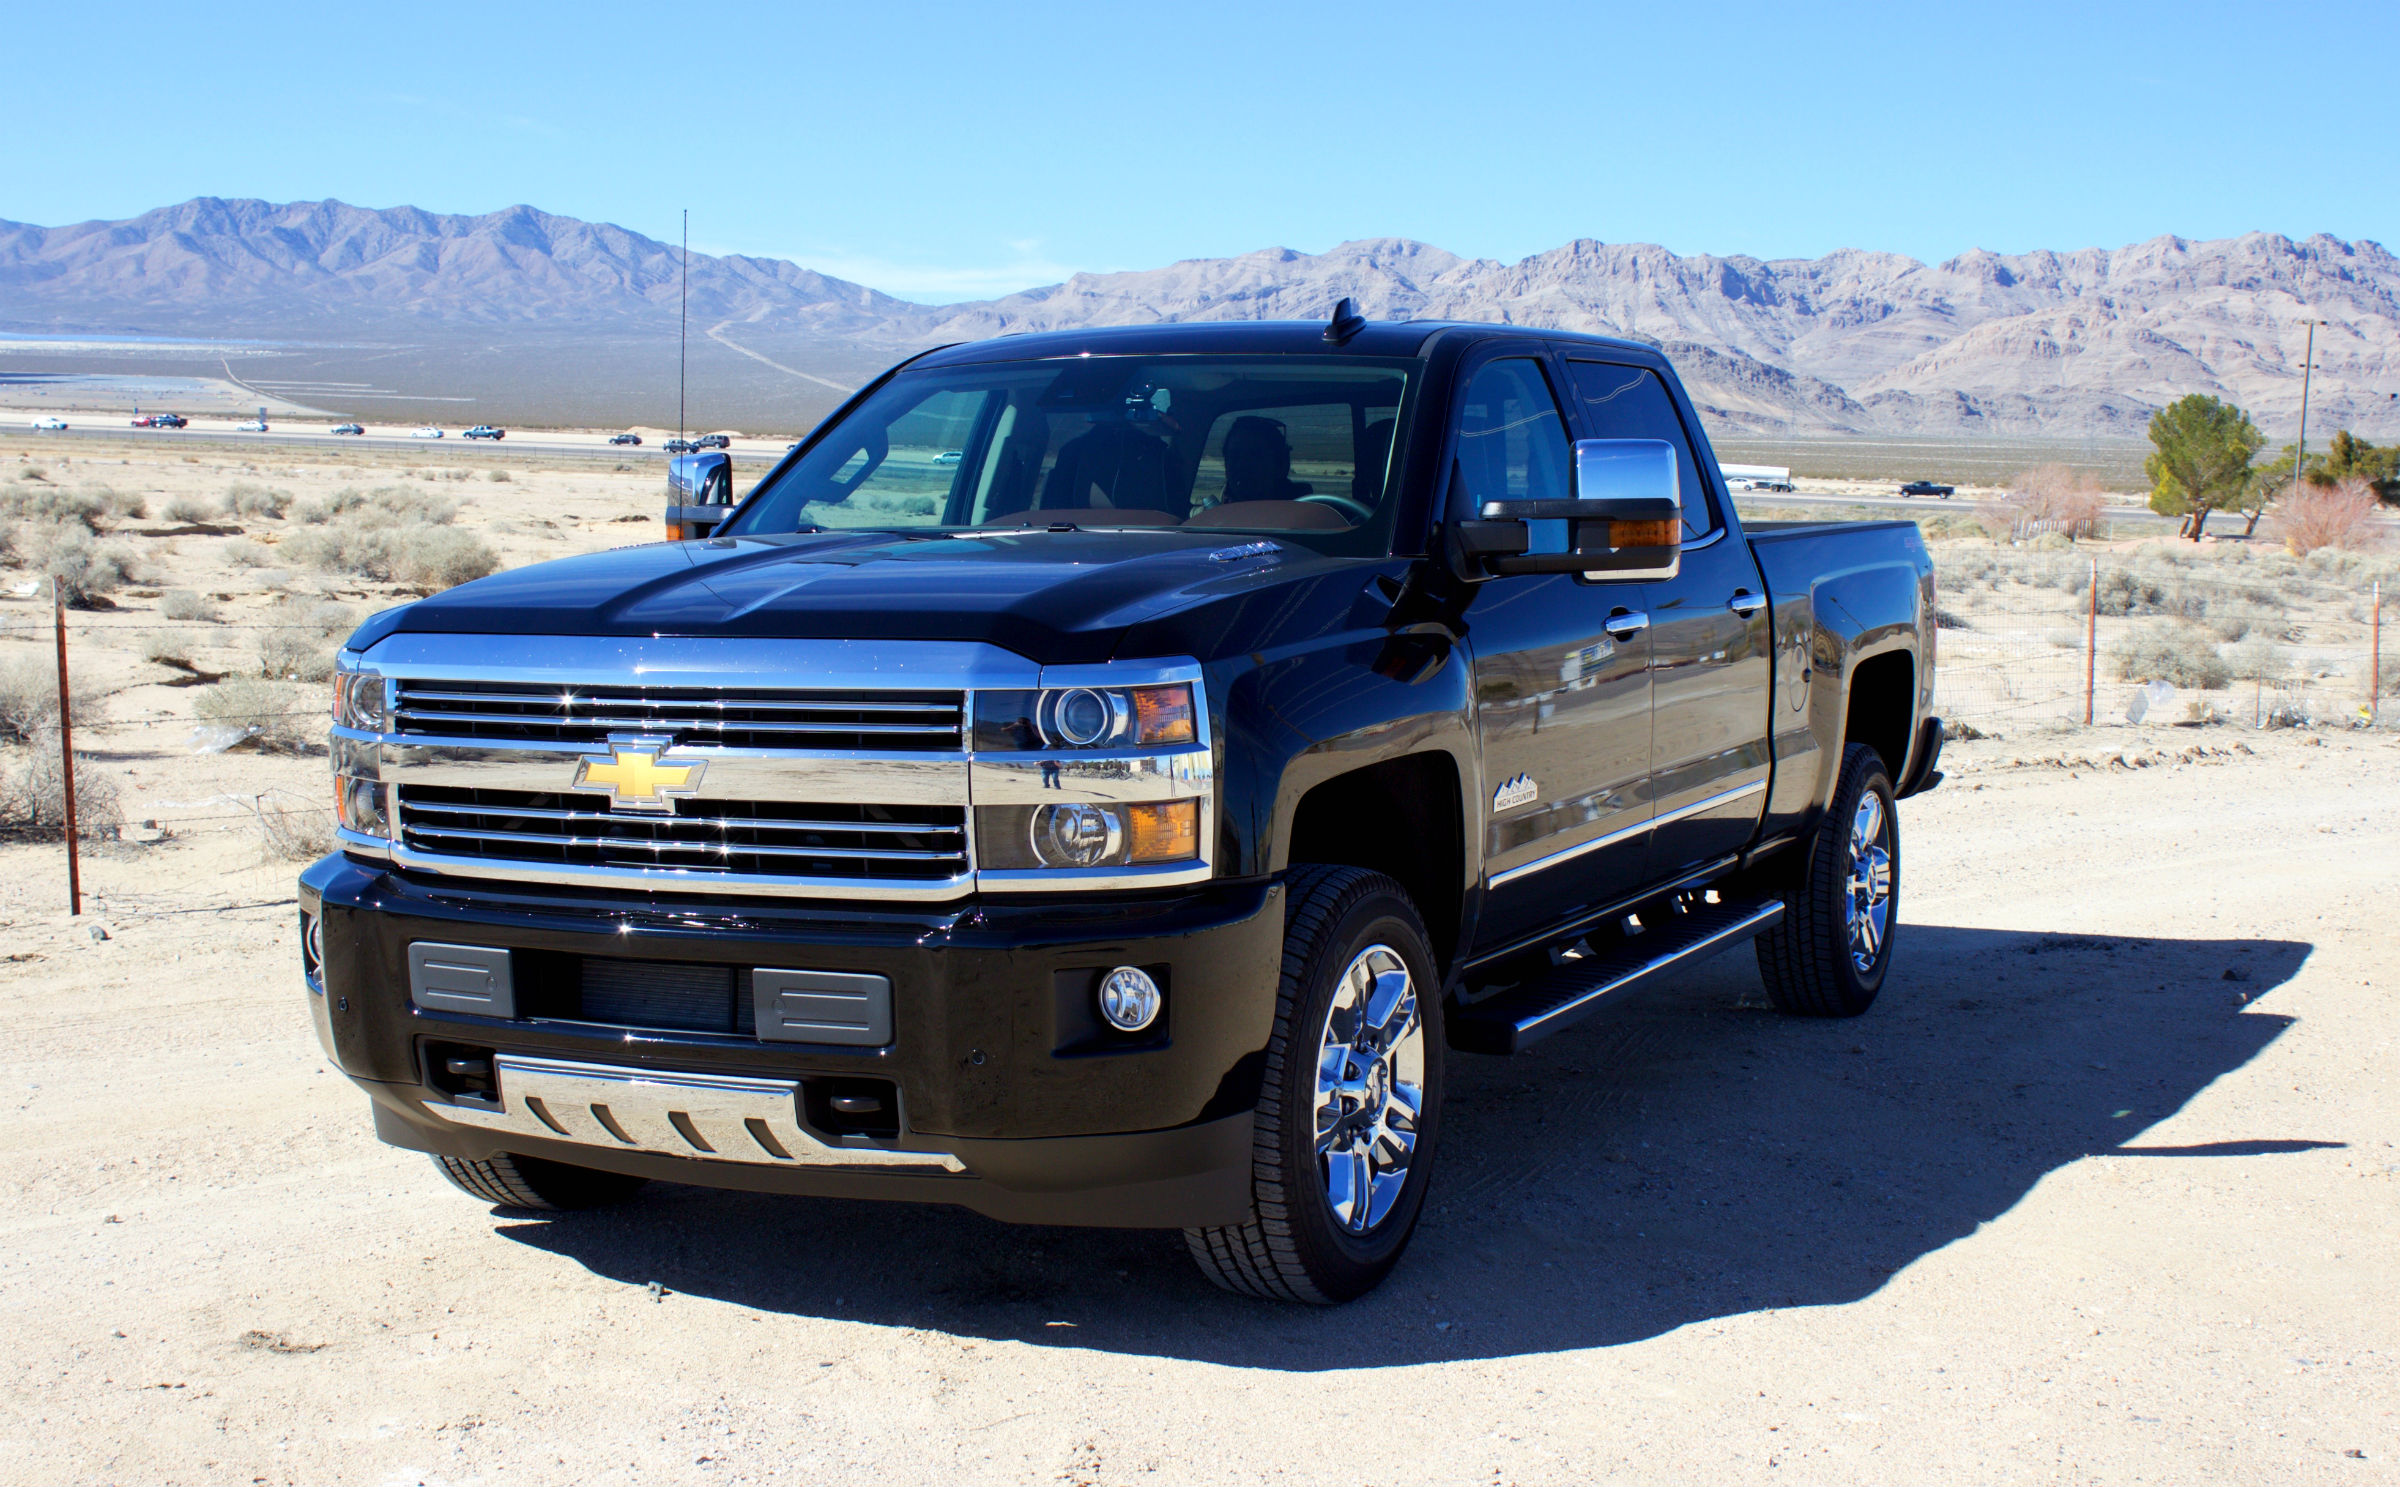 2016 chevrolet silverado 2500hd high country review the ignition blog. Black Bedroom Furniture Sets. Home Design Ideas